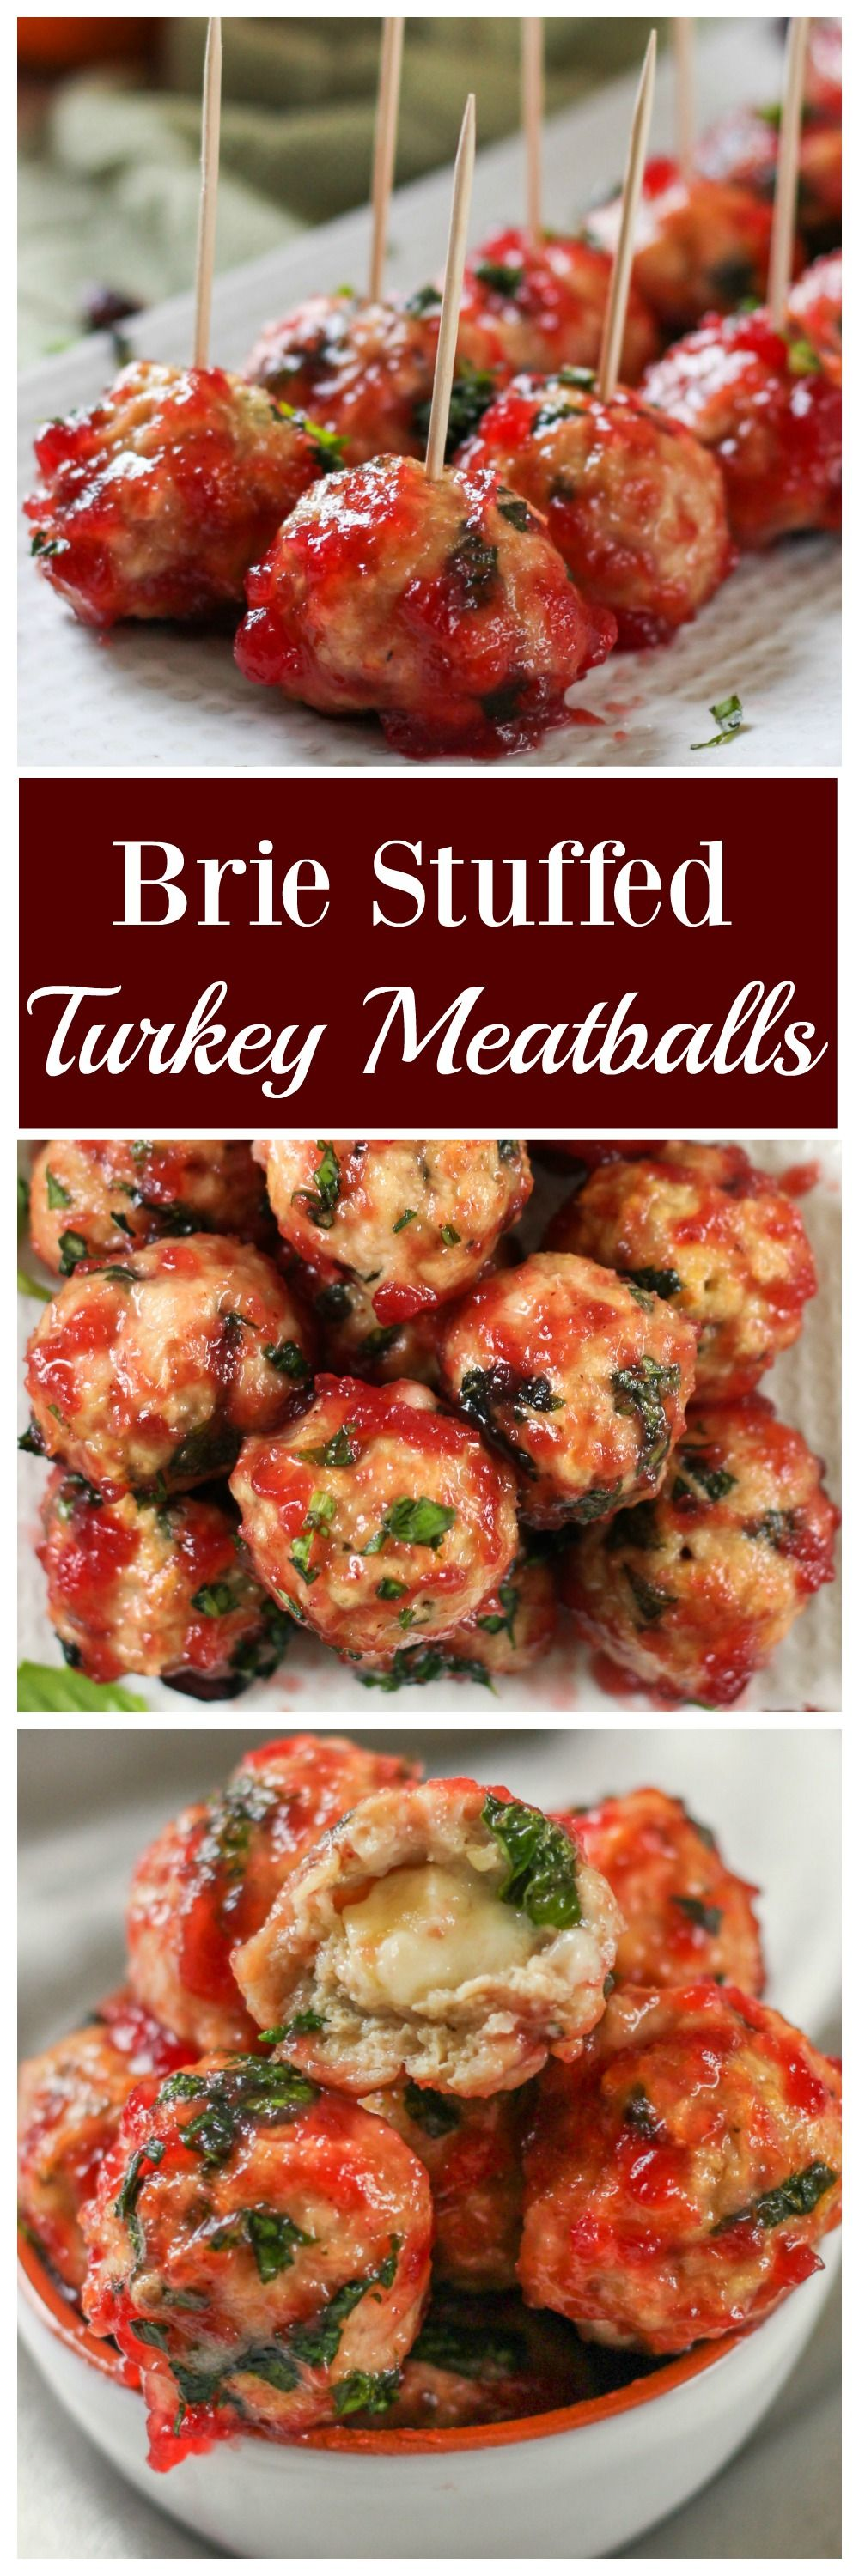 Brie Stuffed Turkey Meatballs W Cranberry Wine Sauce Poultry Recipes Appetizer Recipes Cooking Recipes